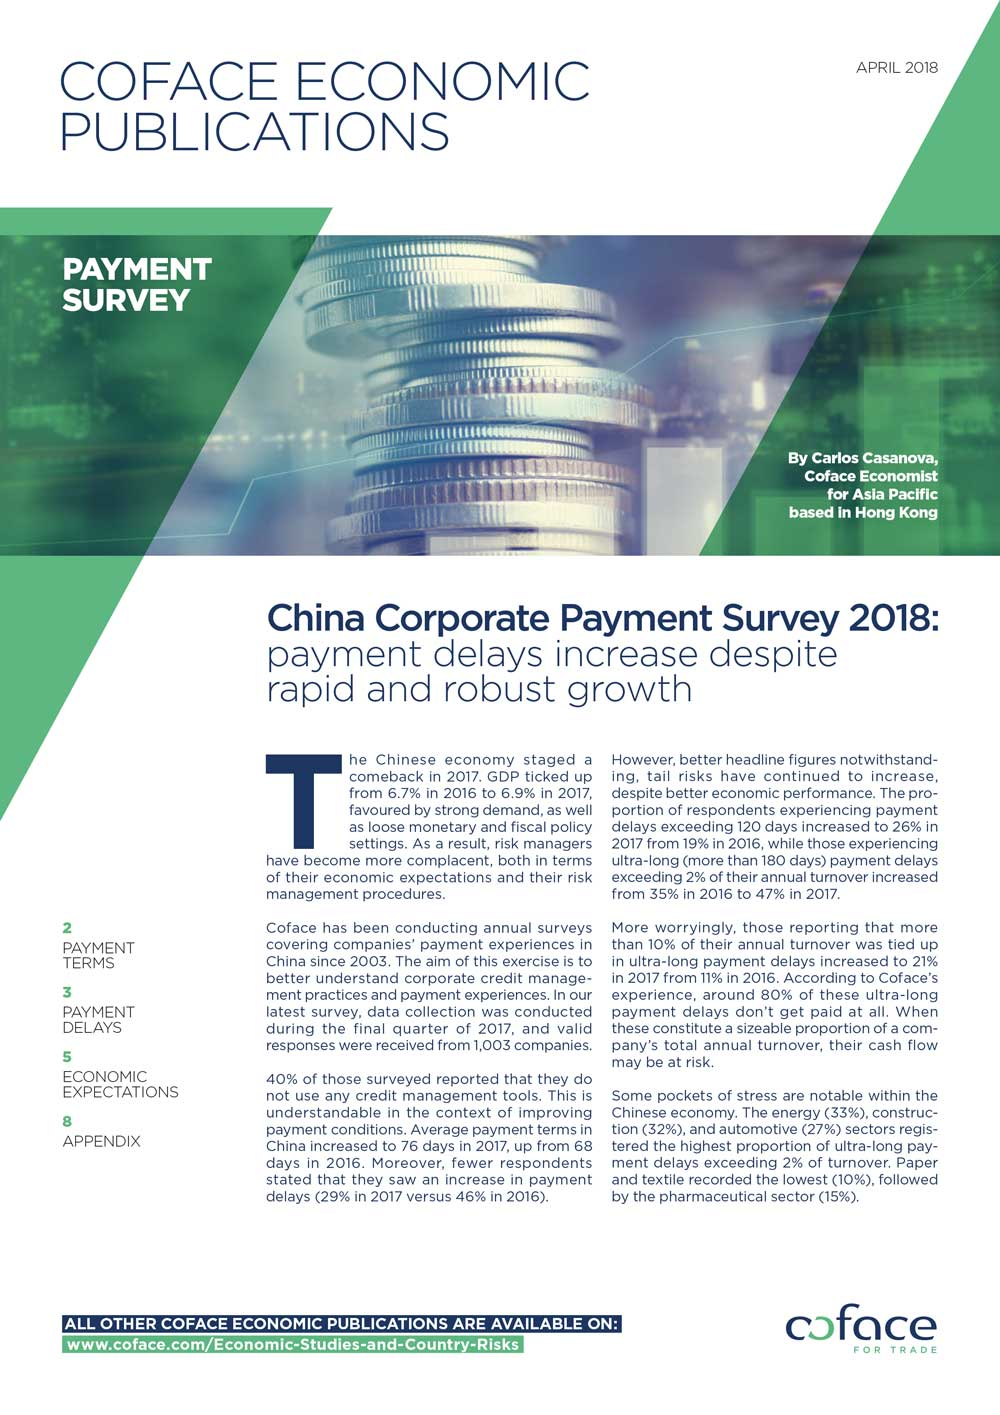 China Corporate Payment Survey 2018